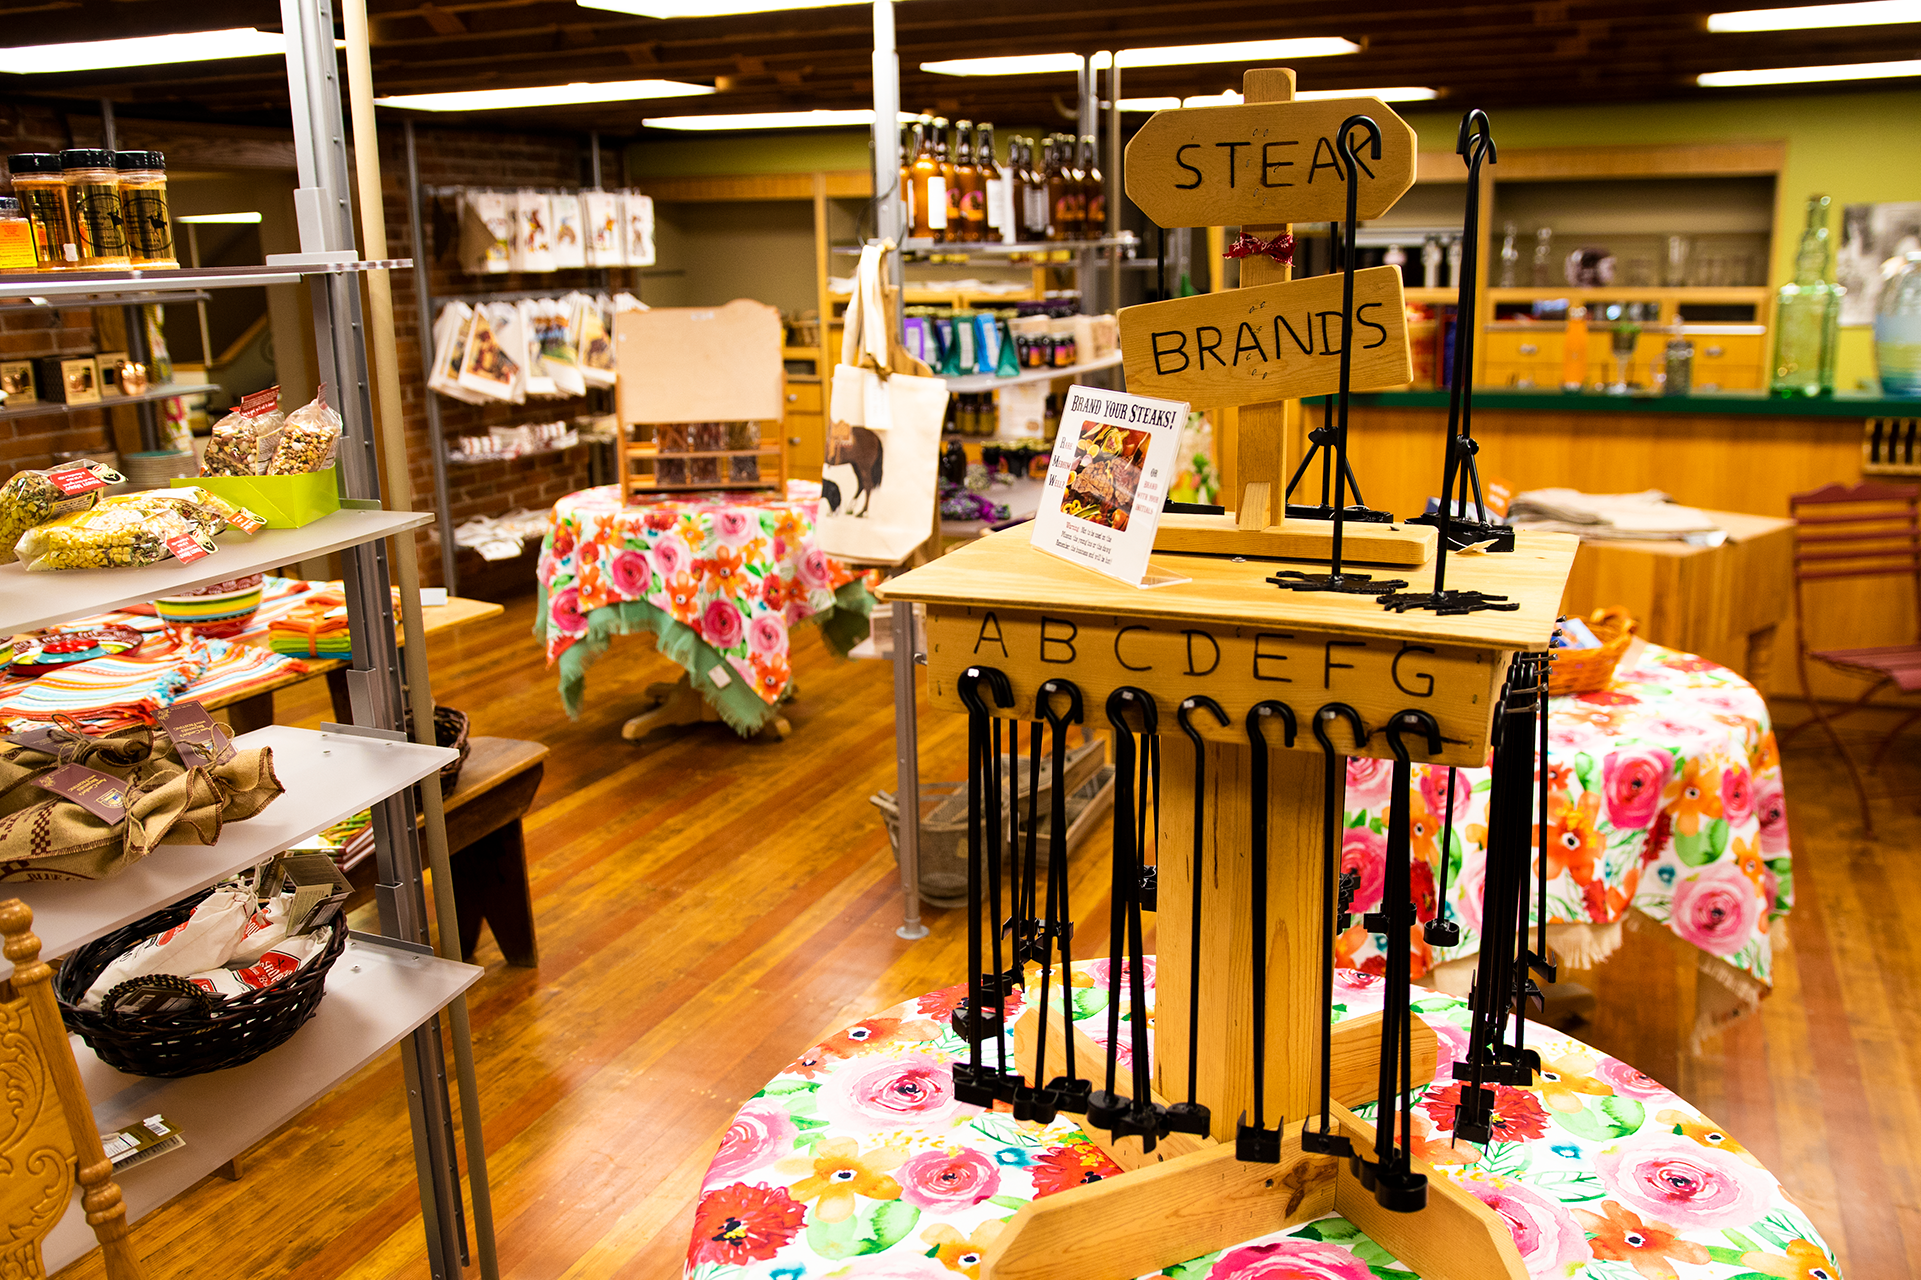 """Uncle Bruno's"" - Explore a fun array of made-in-Wyoming goodies, treats, and home furnishings."